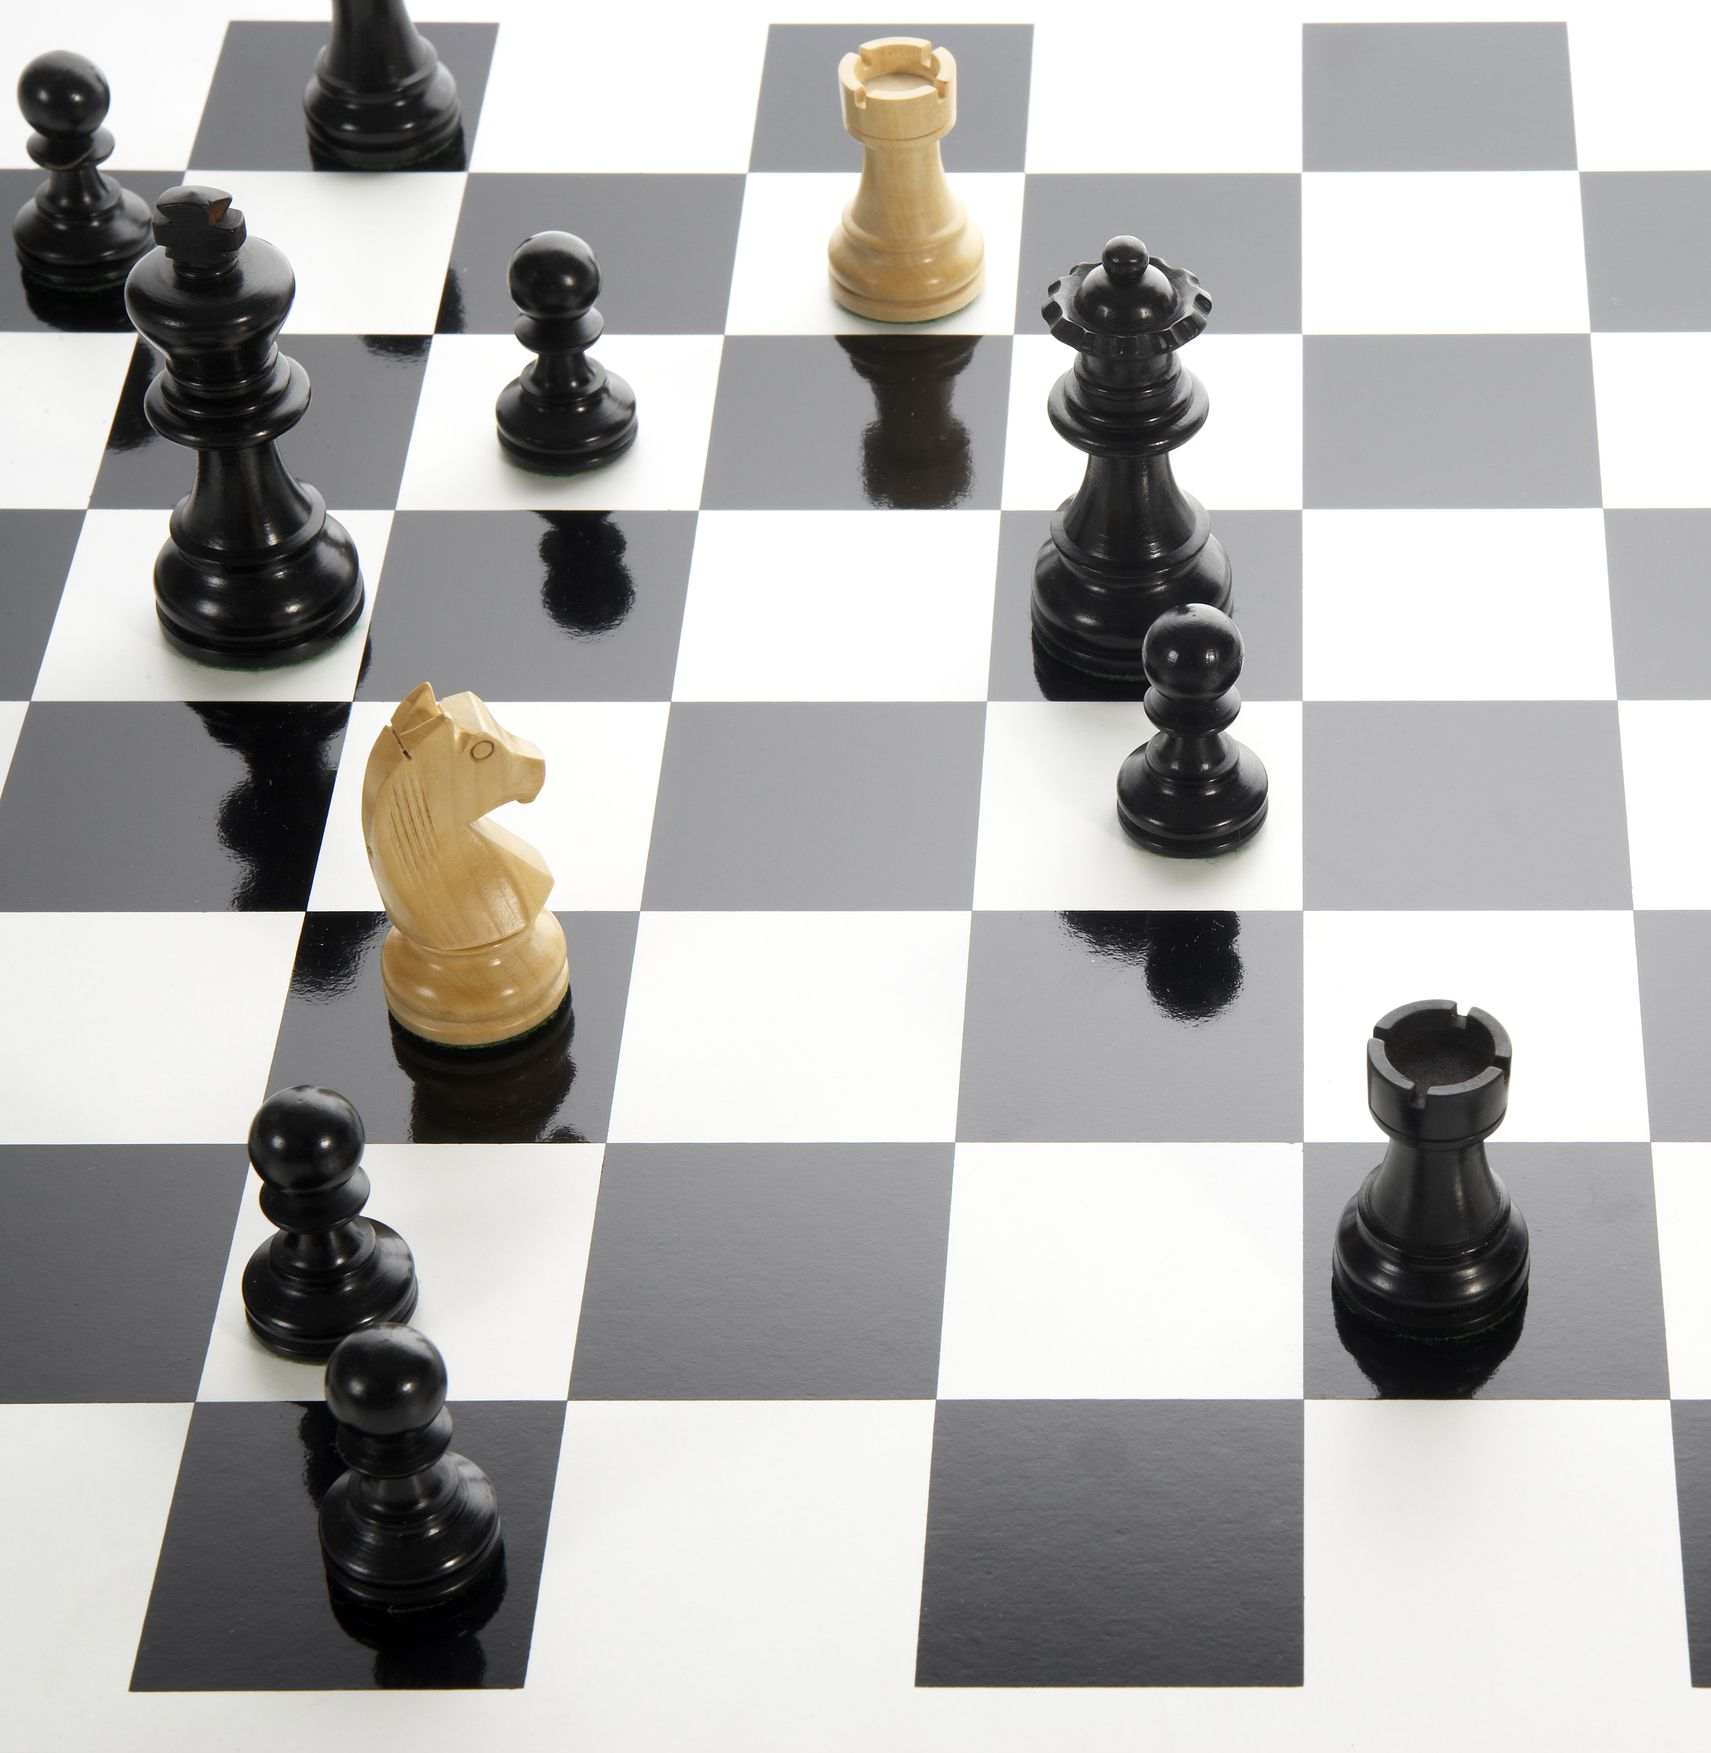 Common Lines in the Sicilian Defense Chess Opening